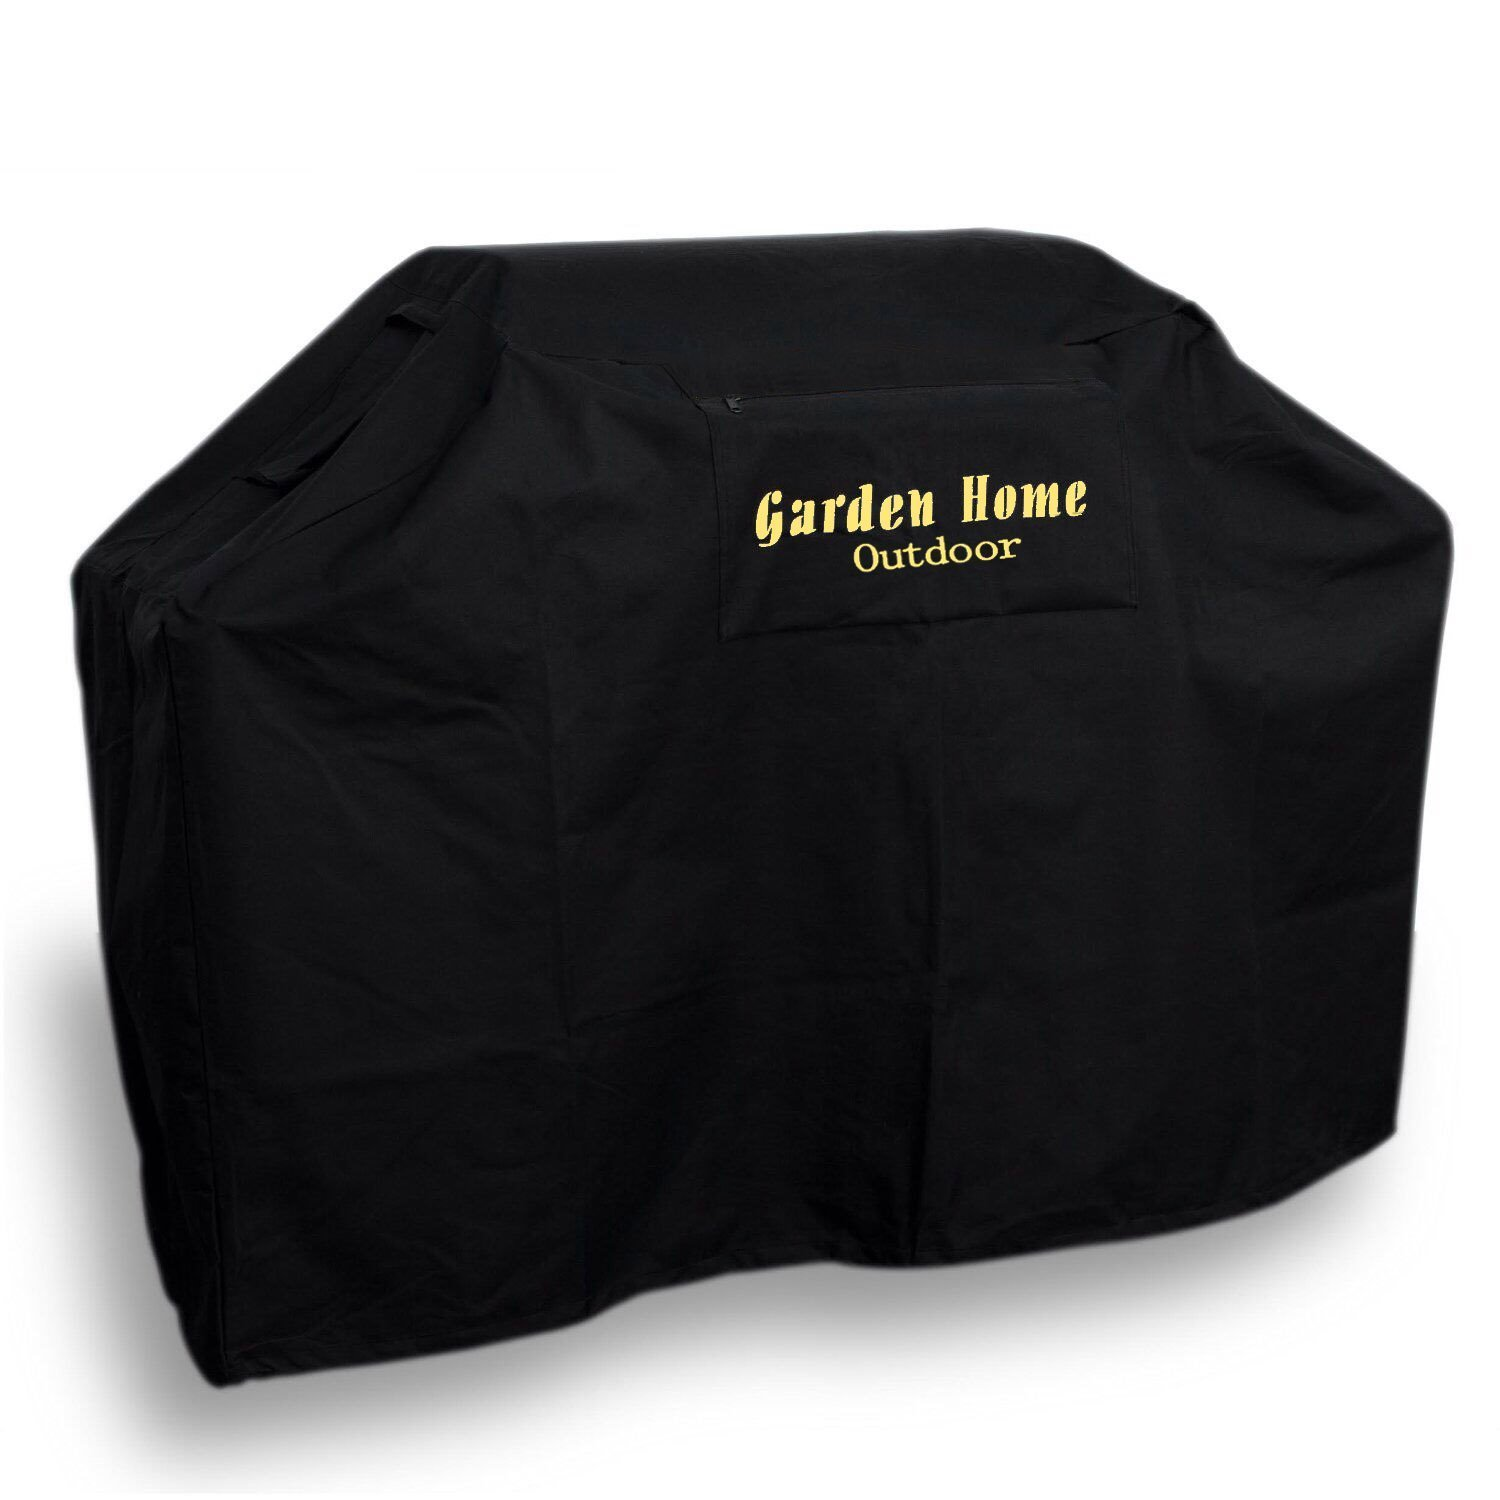 Grill Cover - garden home Up to 58'' Wide, Water Resistant, Air Vents, Padded Handles, Elastic hem cord - Heavy Duty burner gas BBQ grill Cover